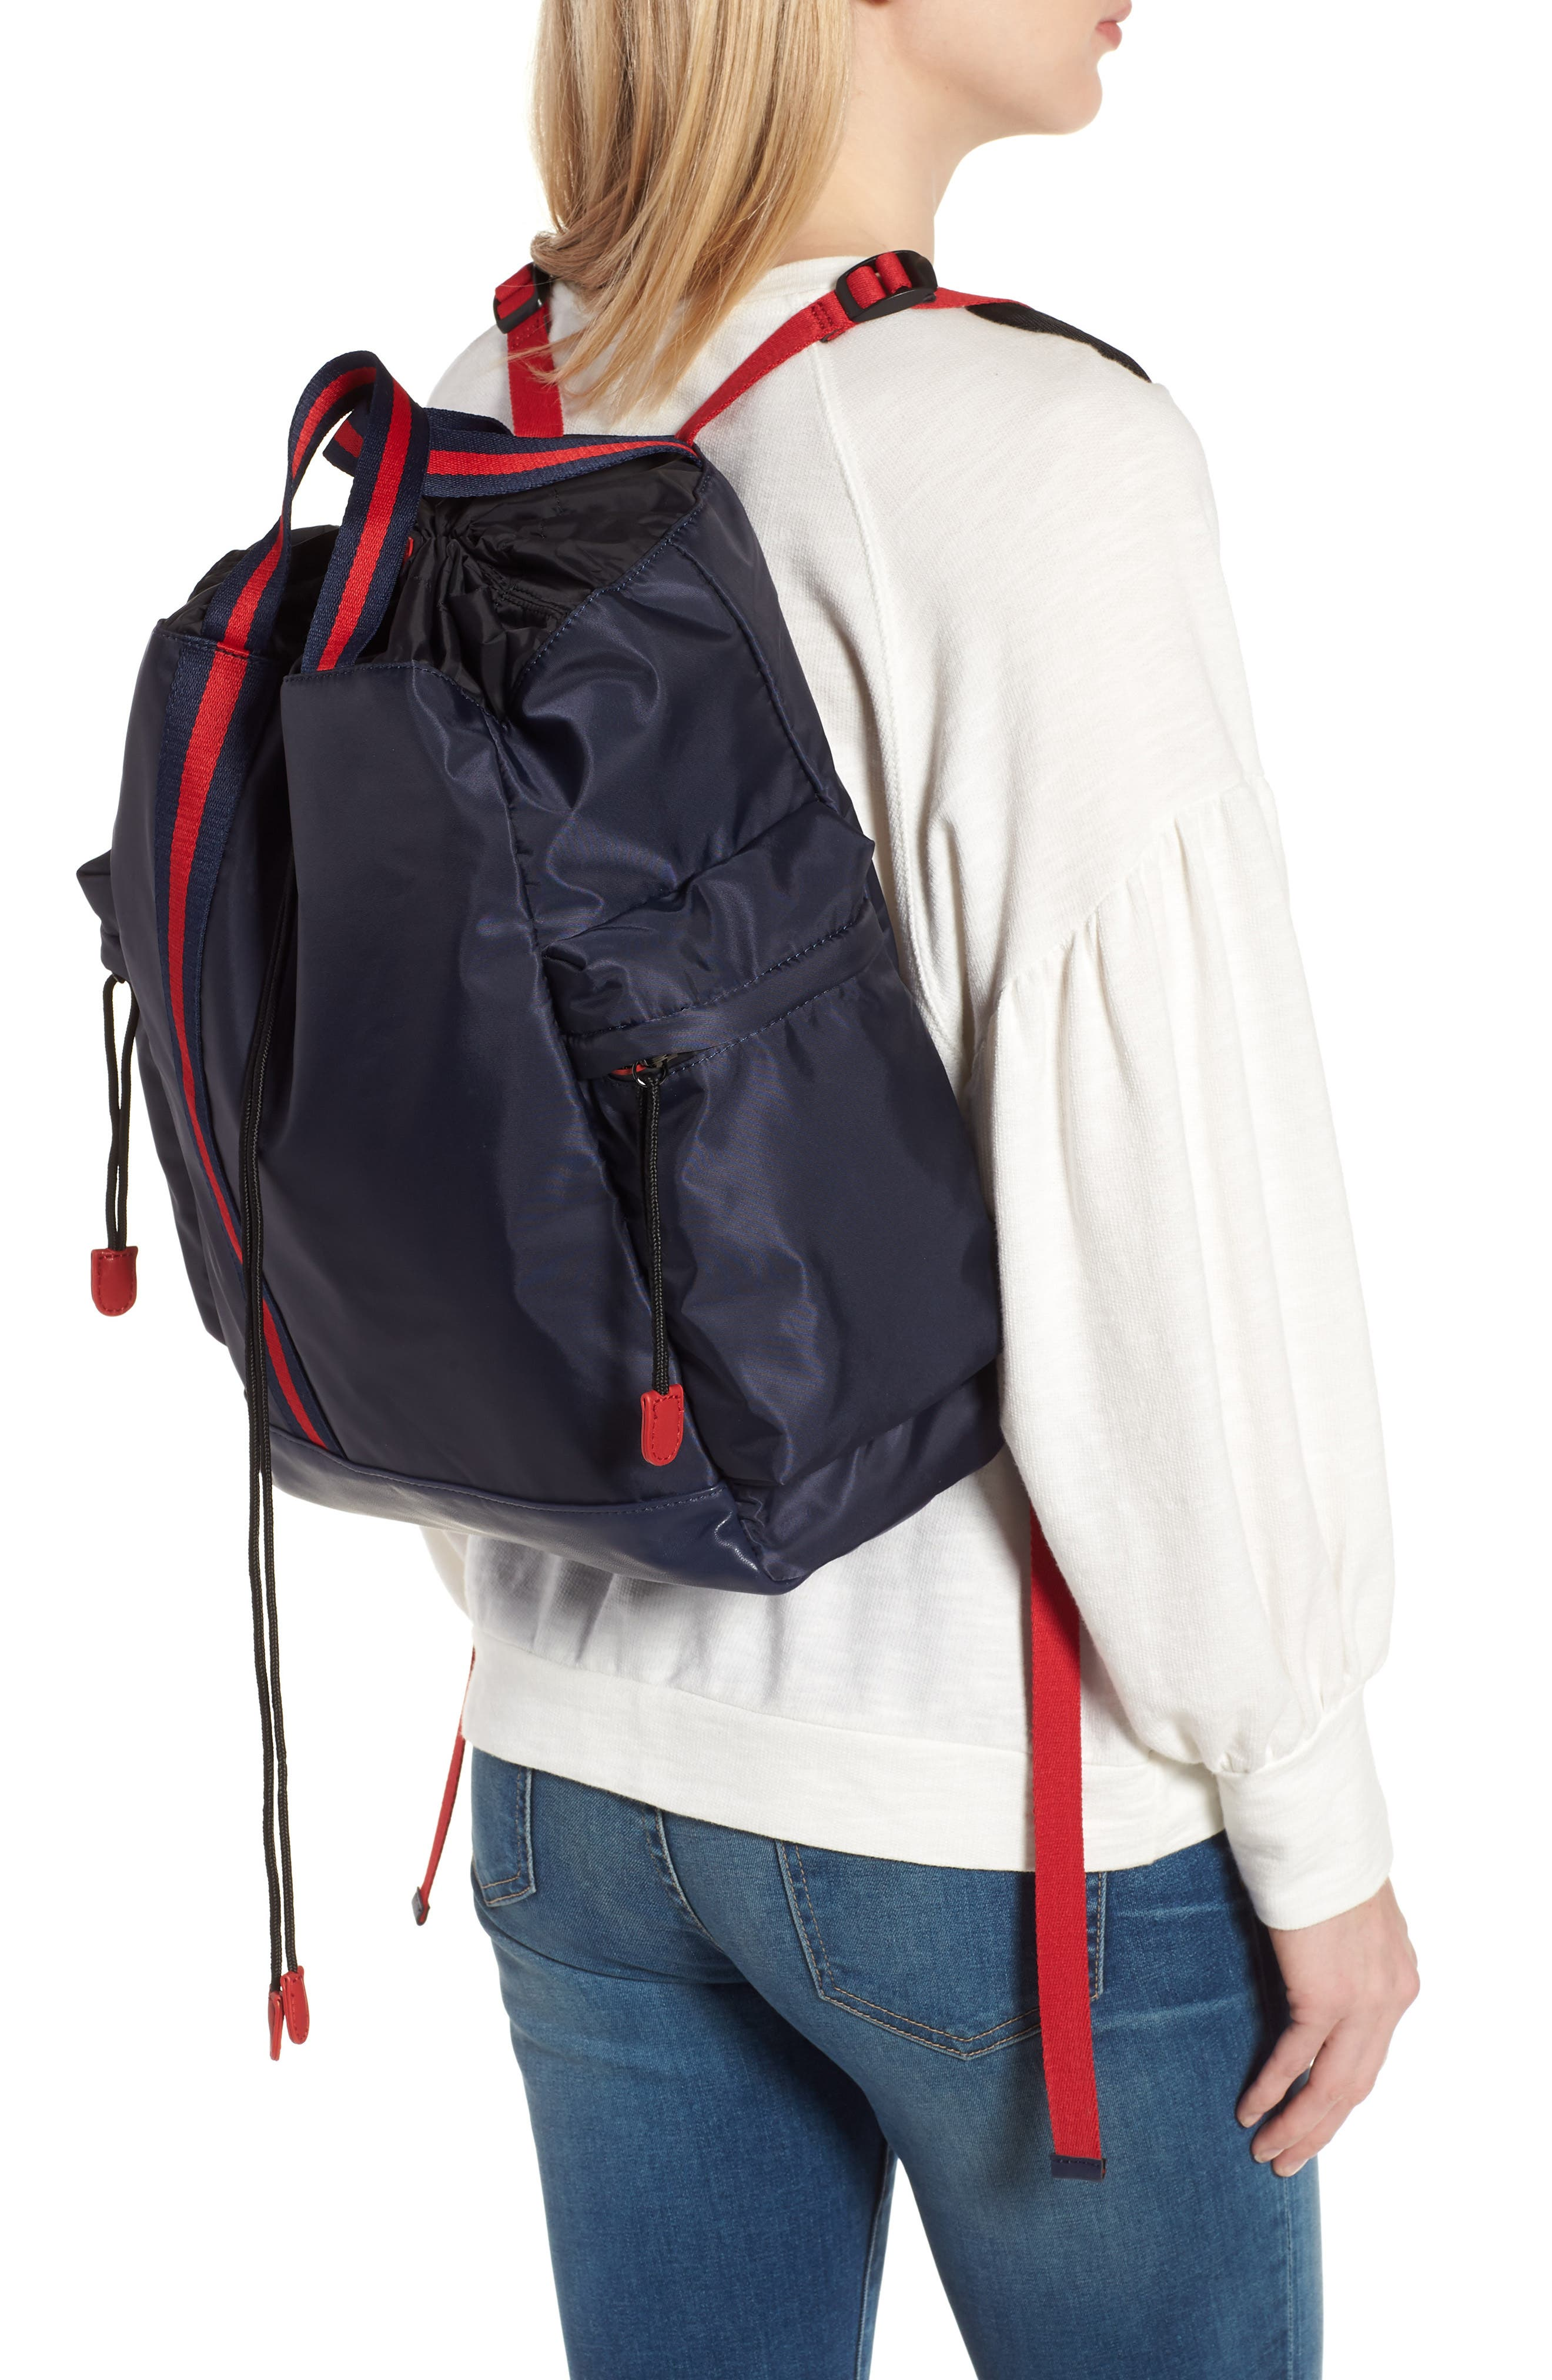 Yungg Stripe Strap Backpack,                             Alternate thumbnail 2, color,                             400